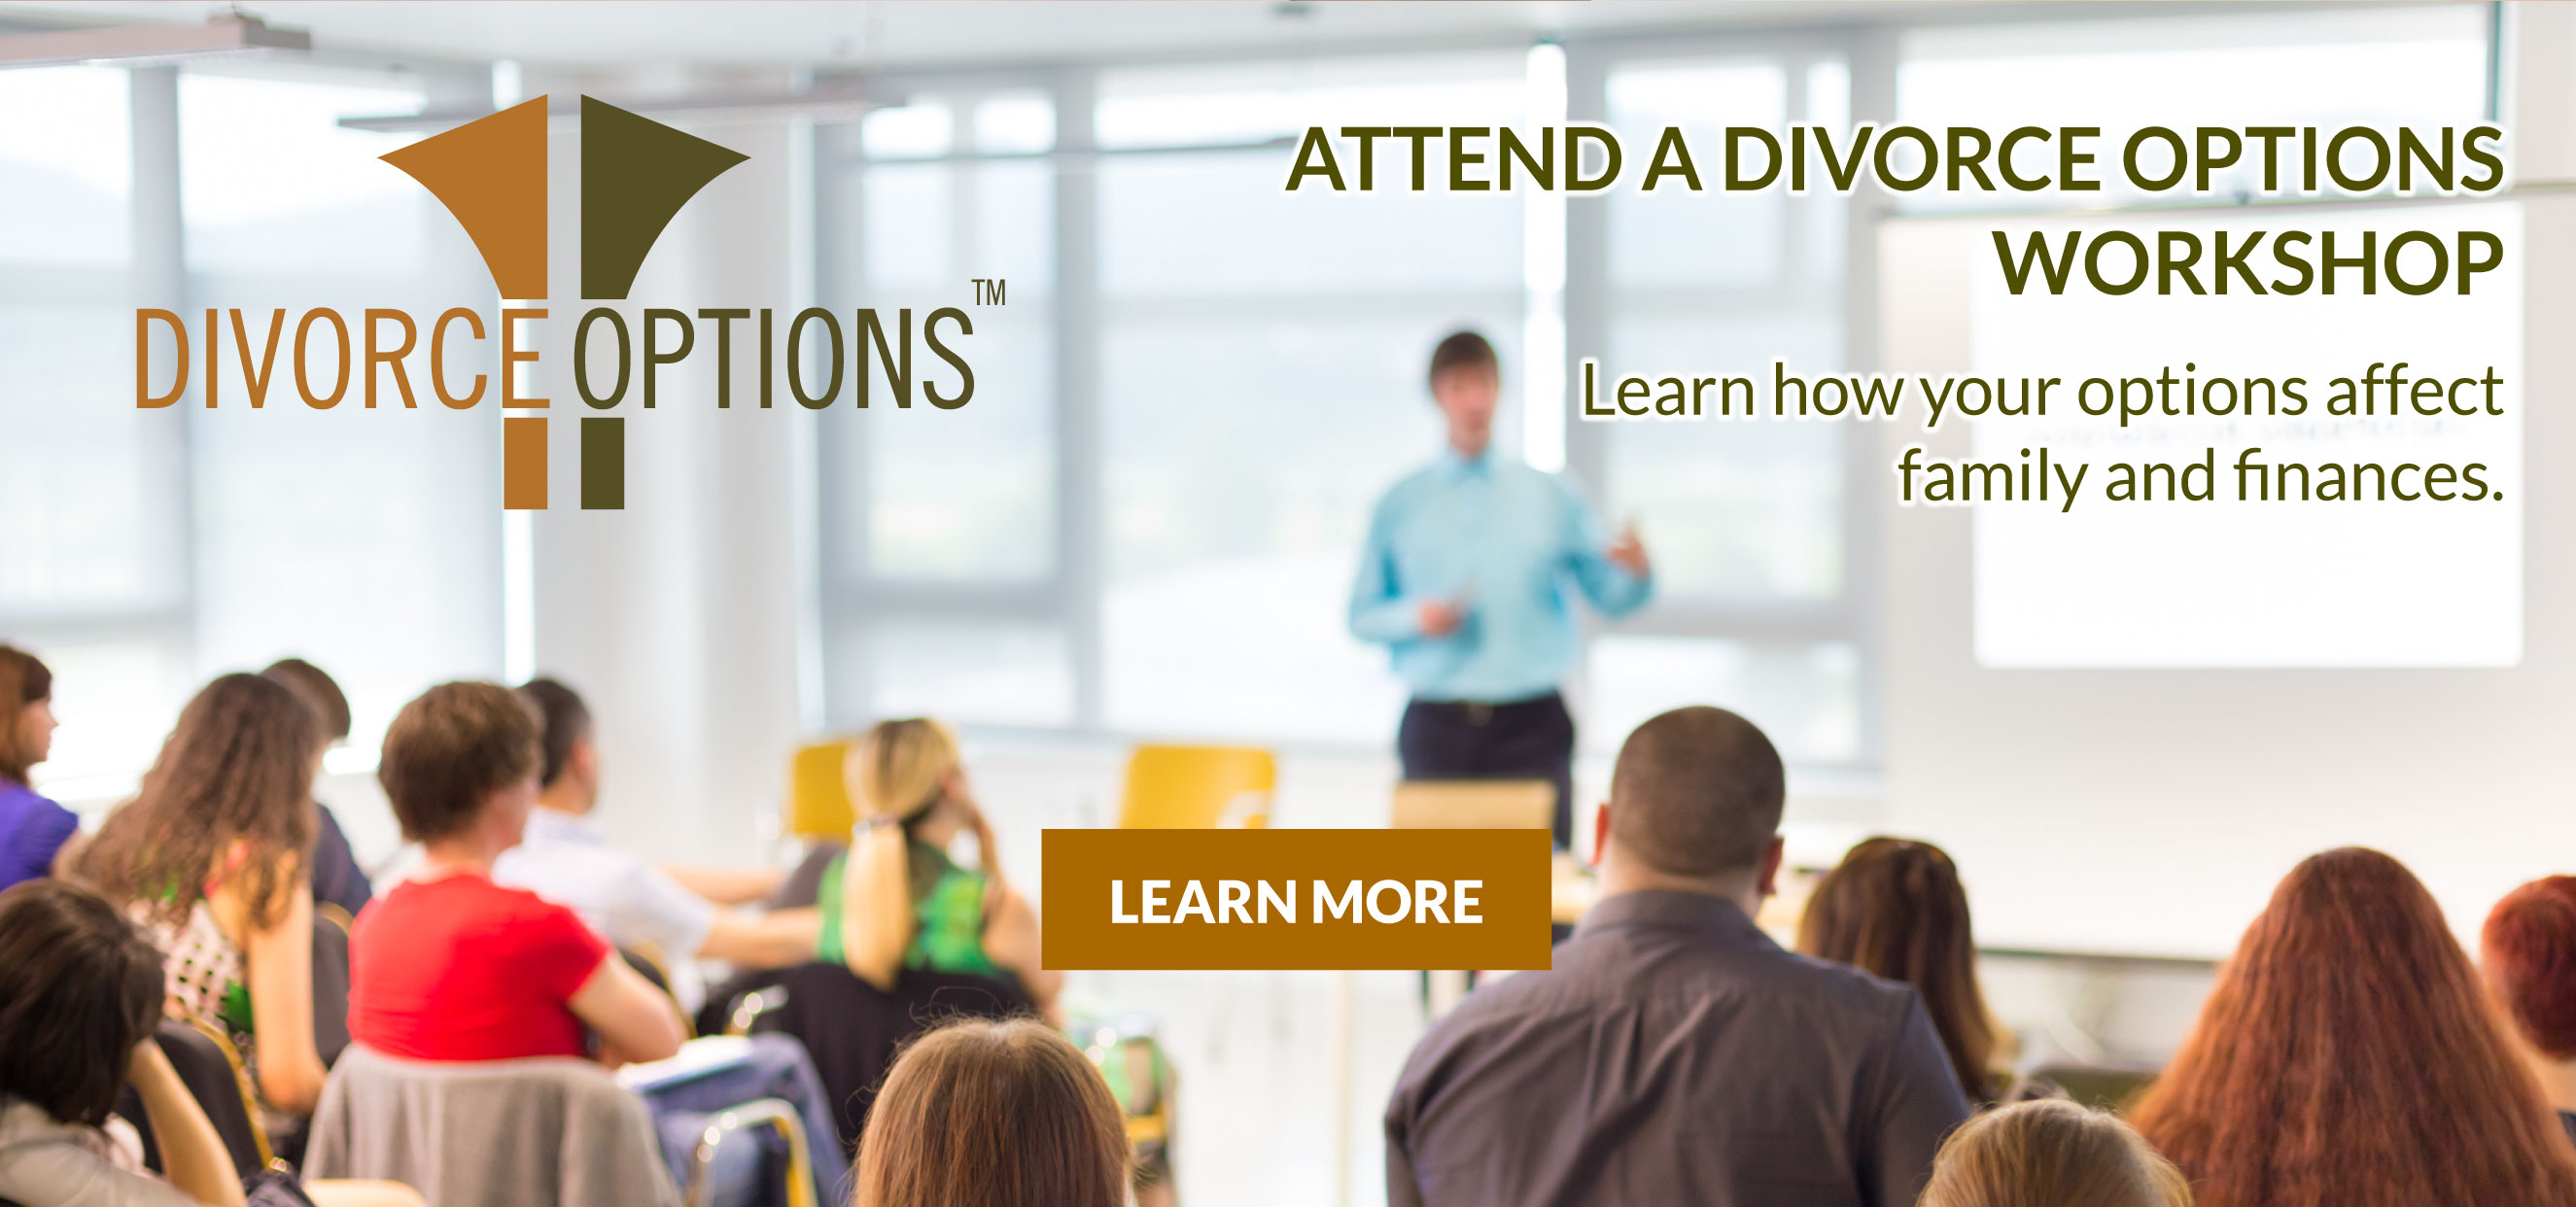 Divorce Options Workshops - Learn how your options affect family and finances